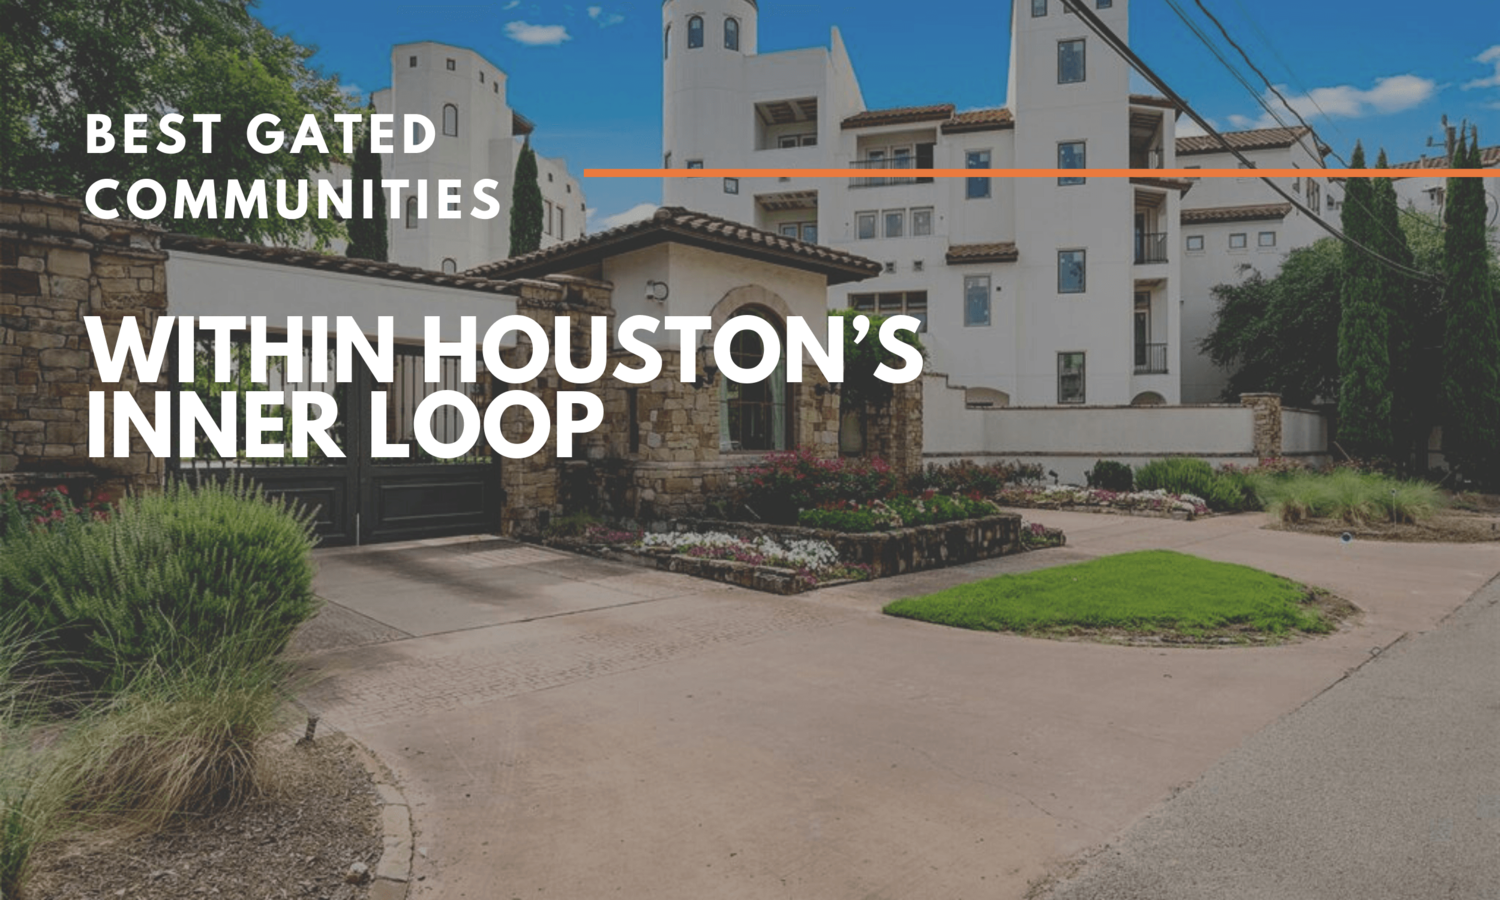 See the Best Gated Communities Within Houston's Inner Loop